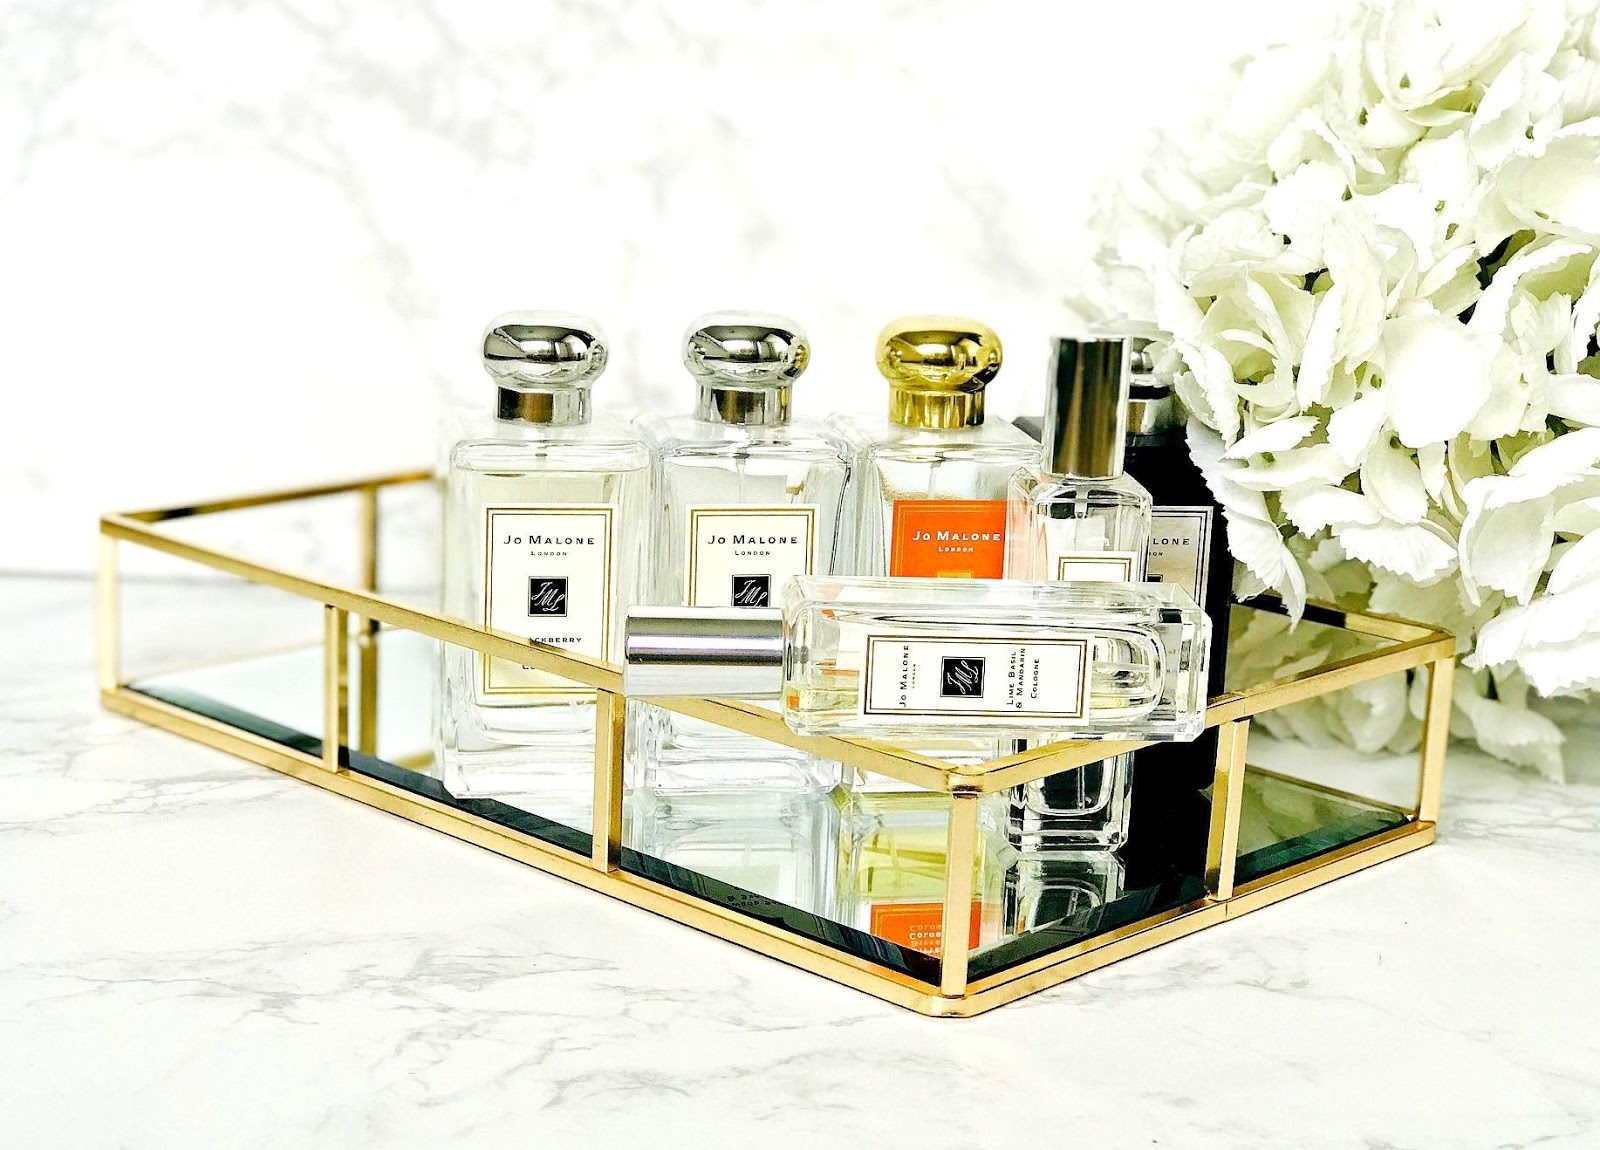 The hype is real, Jo Malone, Is Jo Malone worth the hype